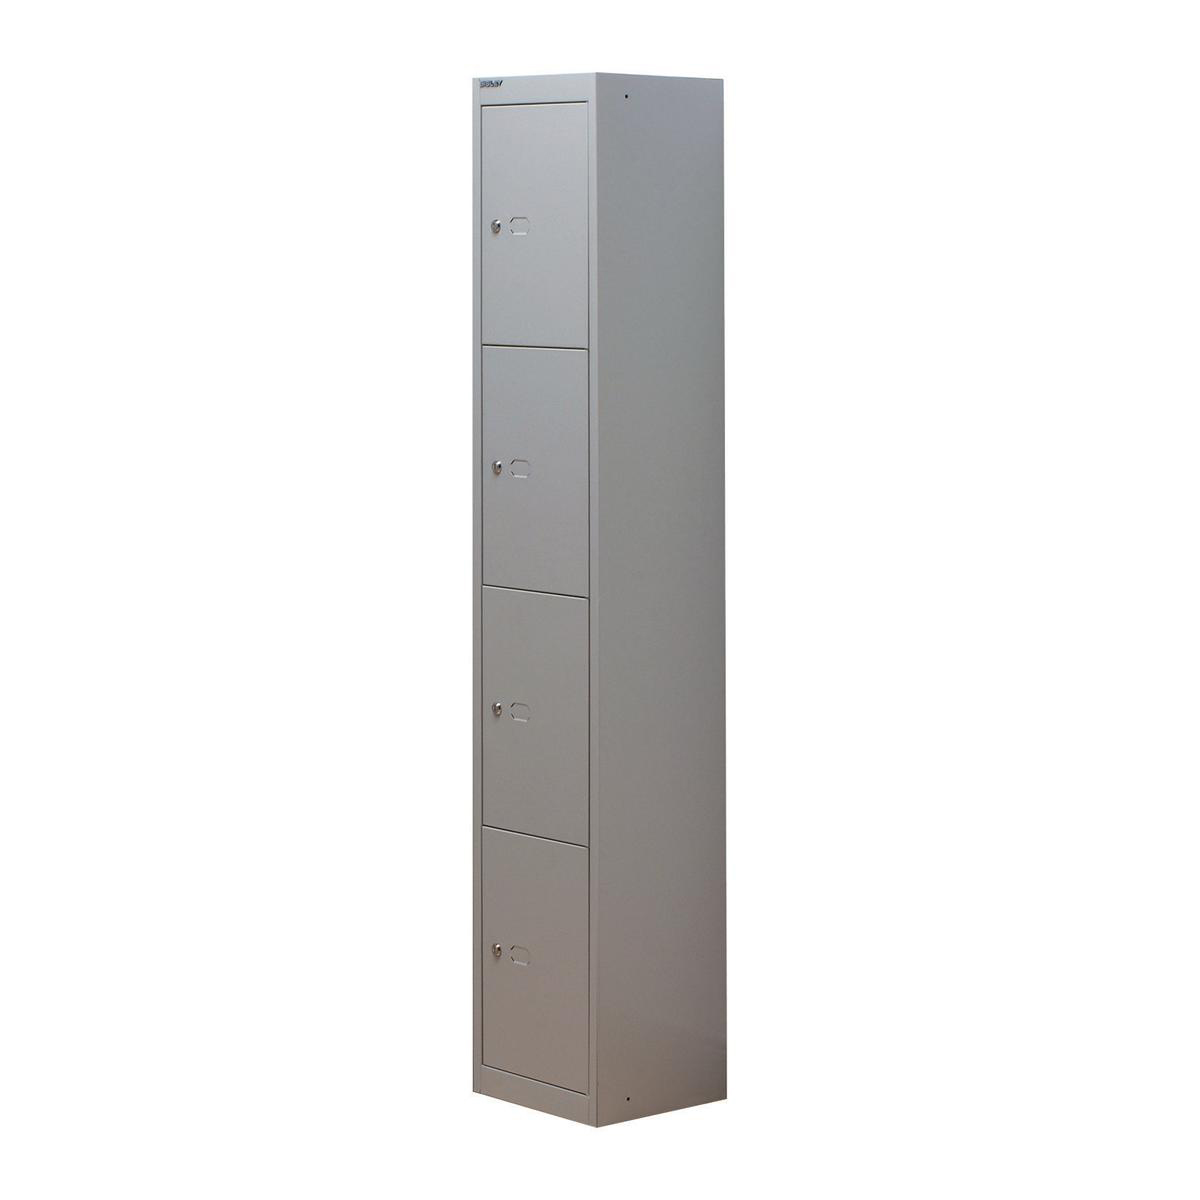 Lockers Bisley Locker 4 Door Goose Grey 305d Ref CLK124-av4